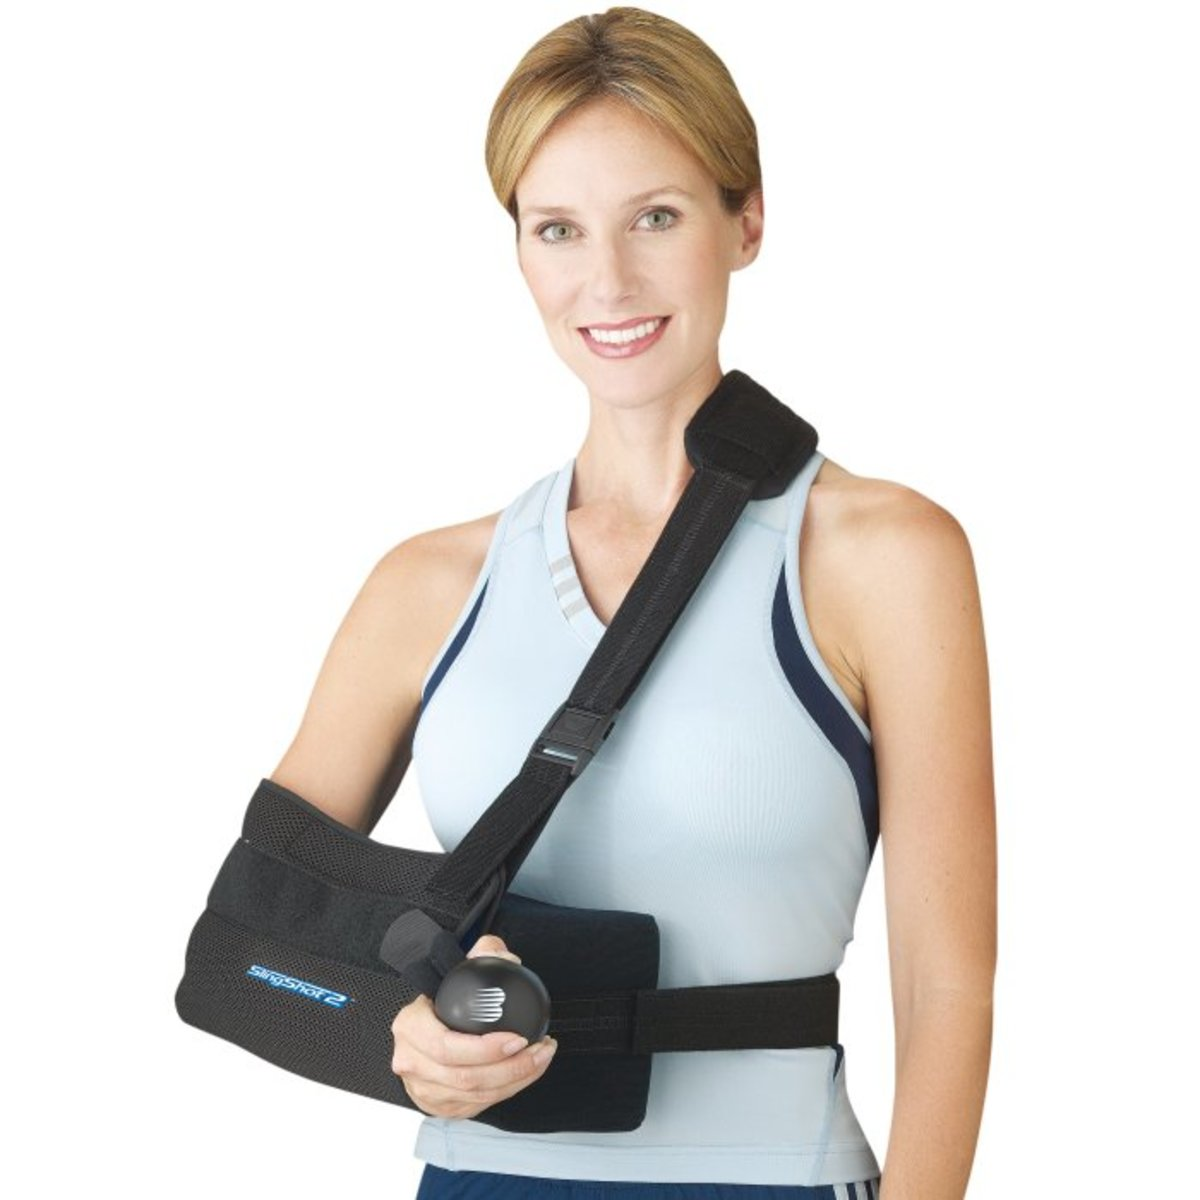 Your sling will look something like this.